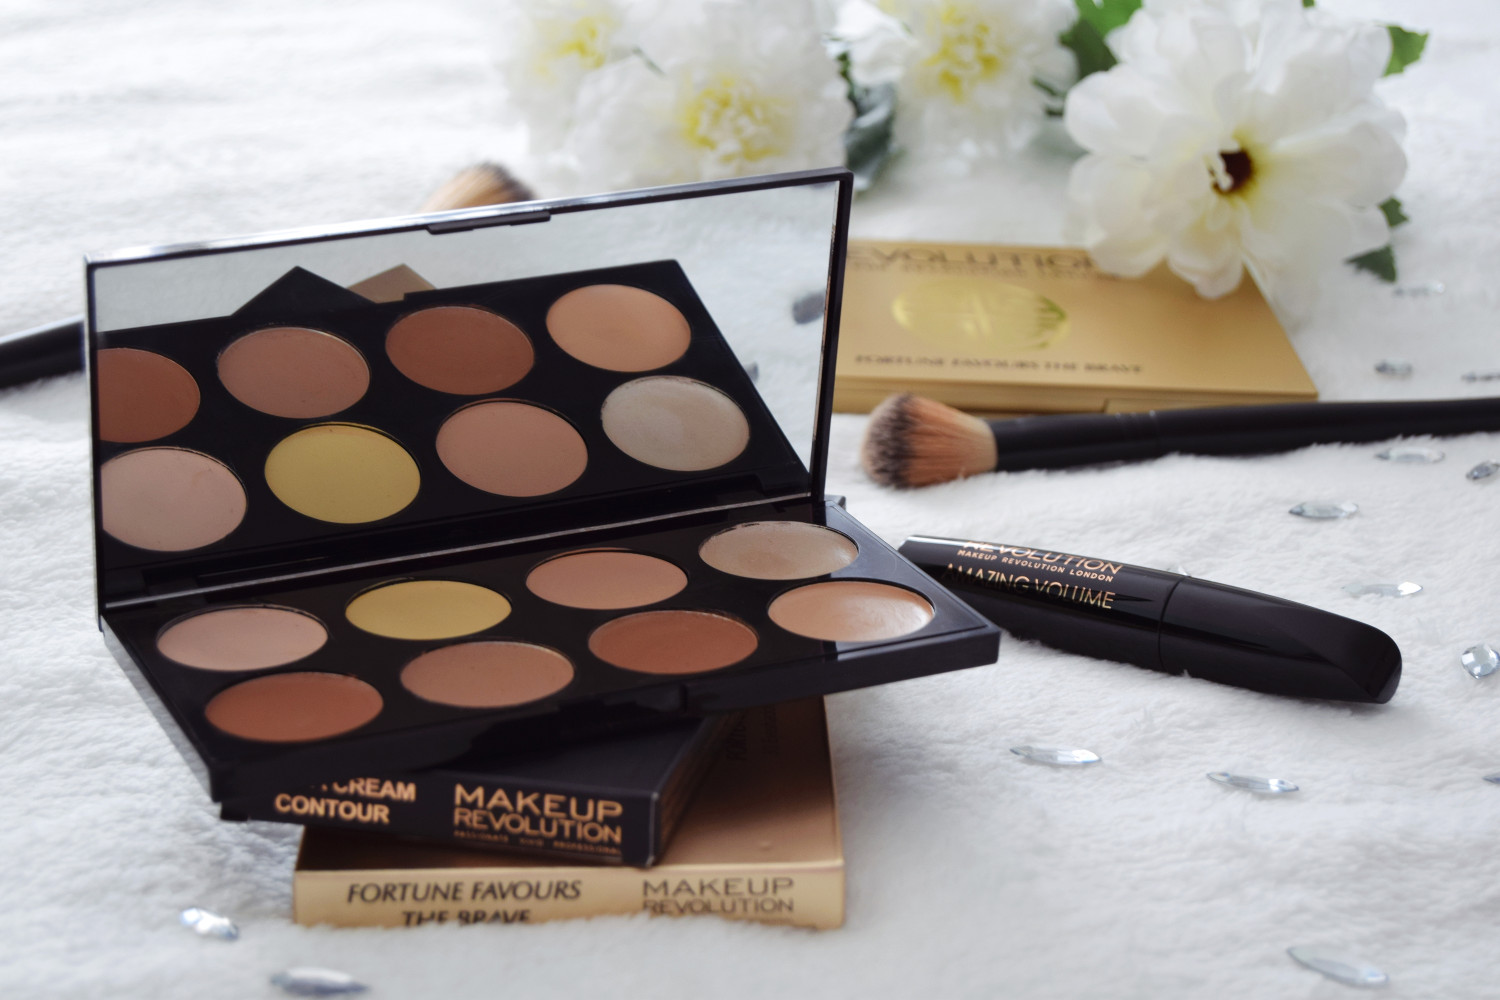 Makeup_Revolution_London_haul_review_ultra_cream_contour_Zalabell_3